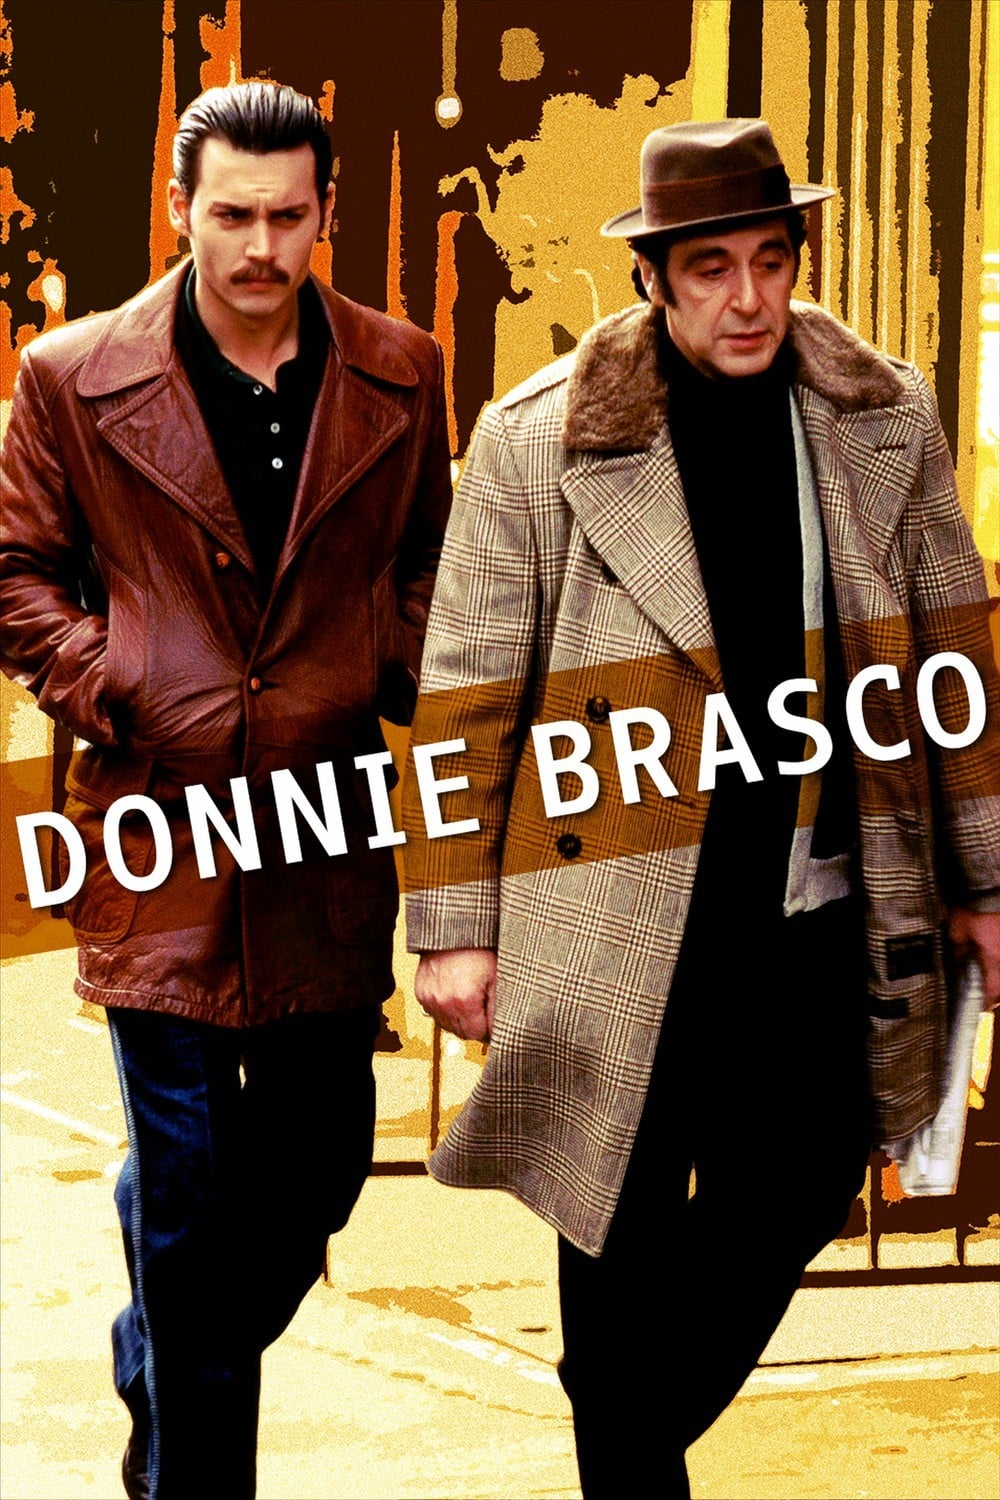 Fedőneve: Donnie Brasco